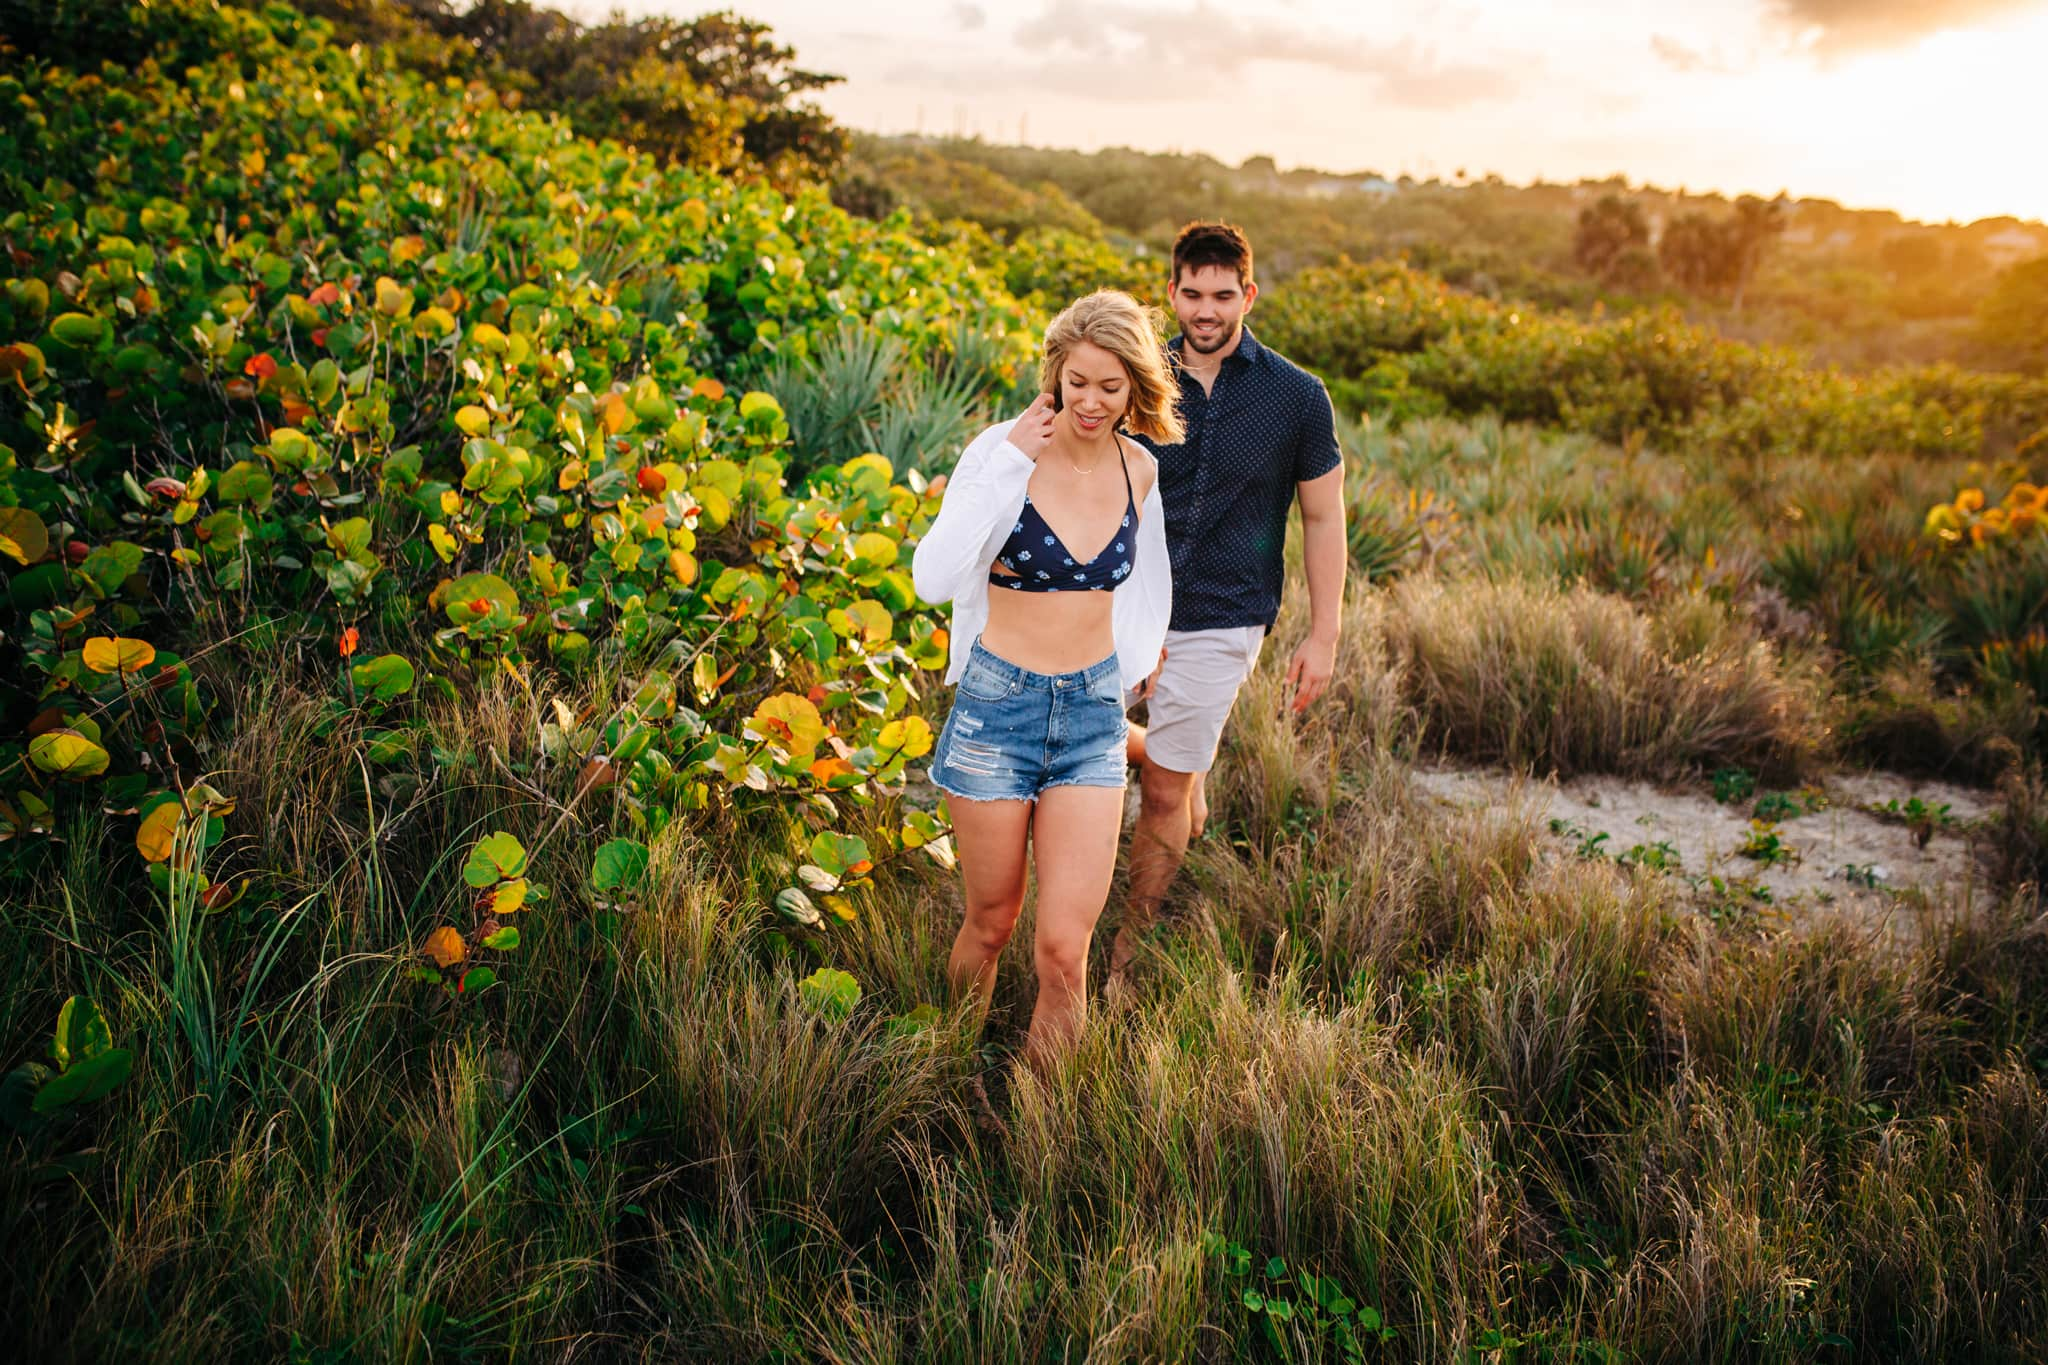 girl in bathing suit and shorts leading boyfriend through a field during golden hour